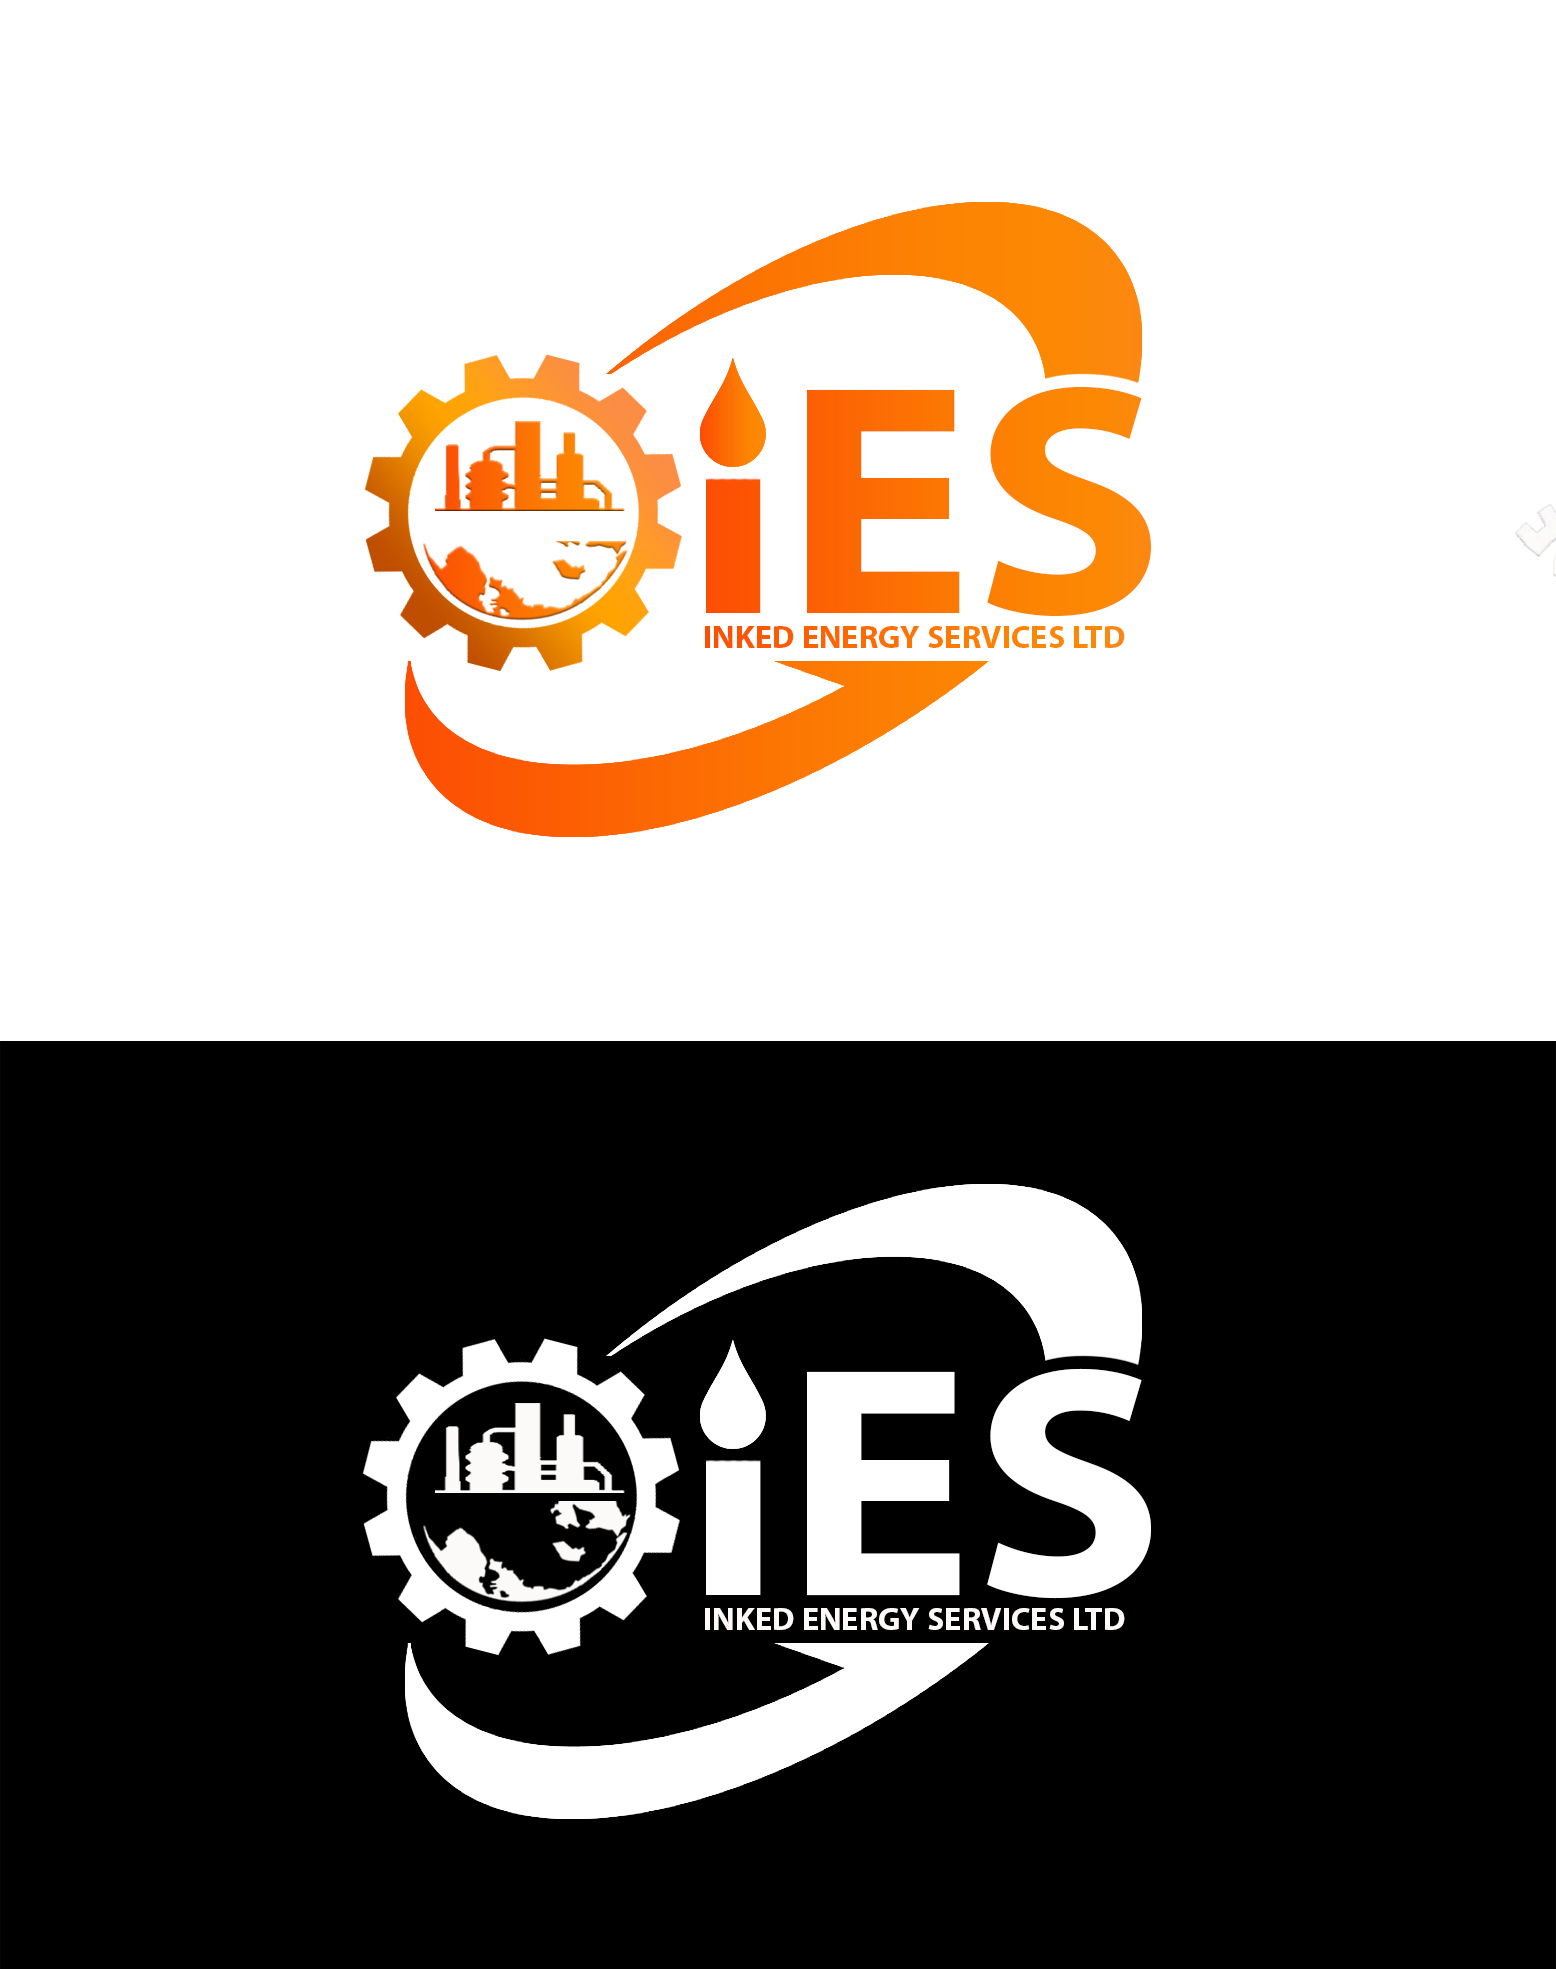 Logo Design by JSDESIGNGROUP - Entry No. 125 in the Logo Design Contest Creative Logo Design for INKED ENERGY SERVICES LTD.